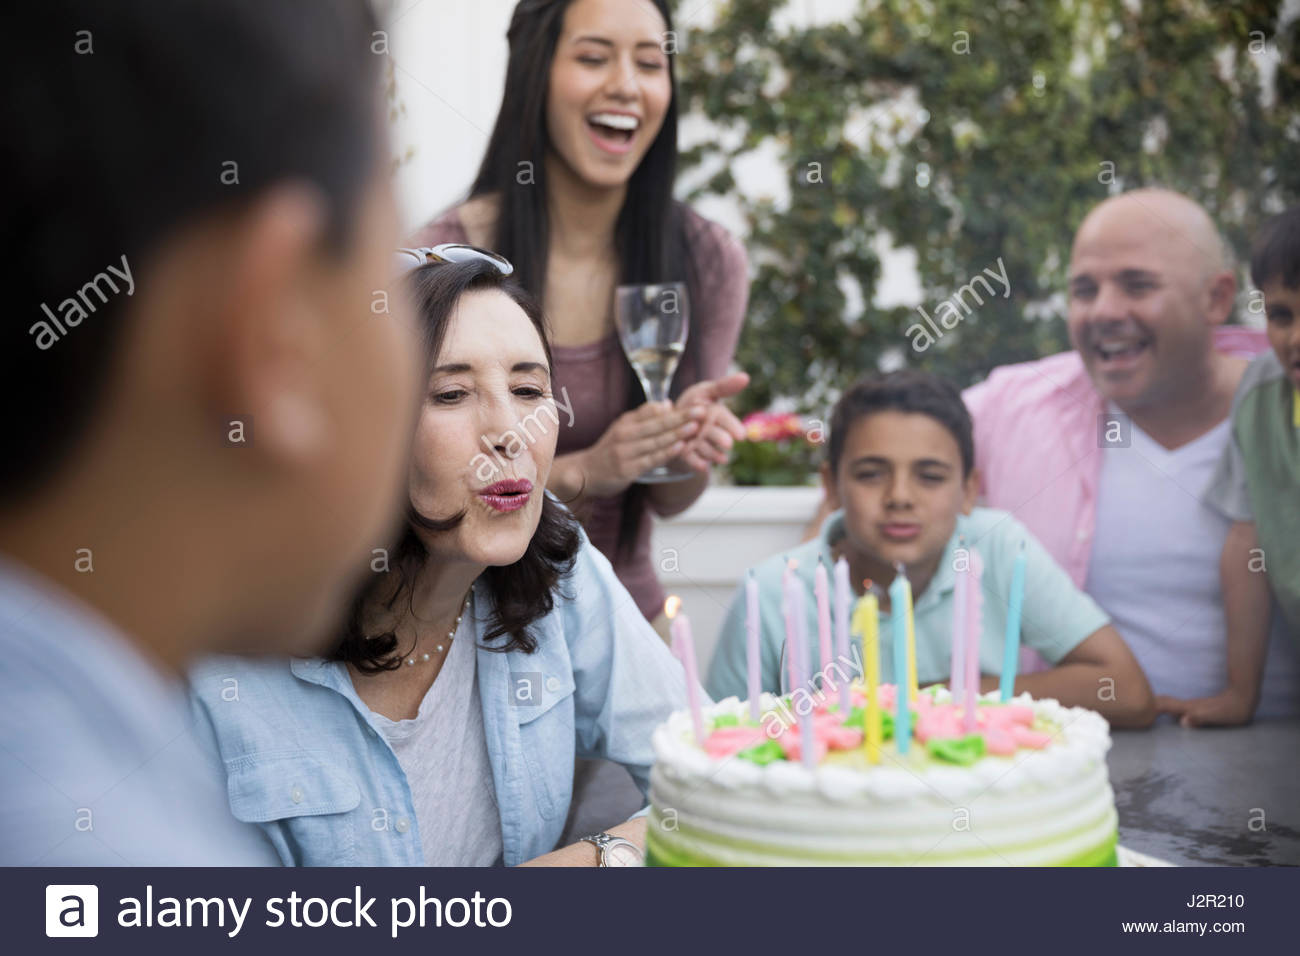 Multi-generation family celebrating birthday, blowing out candles on cake - Stock Image